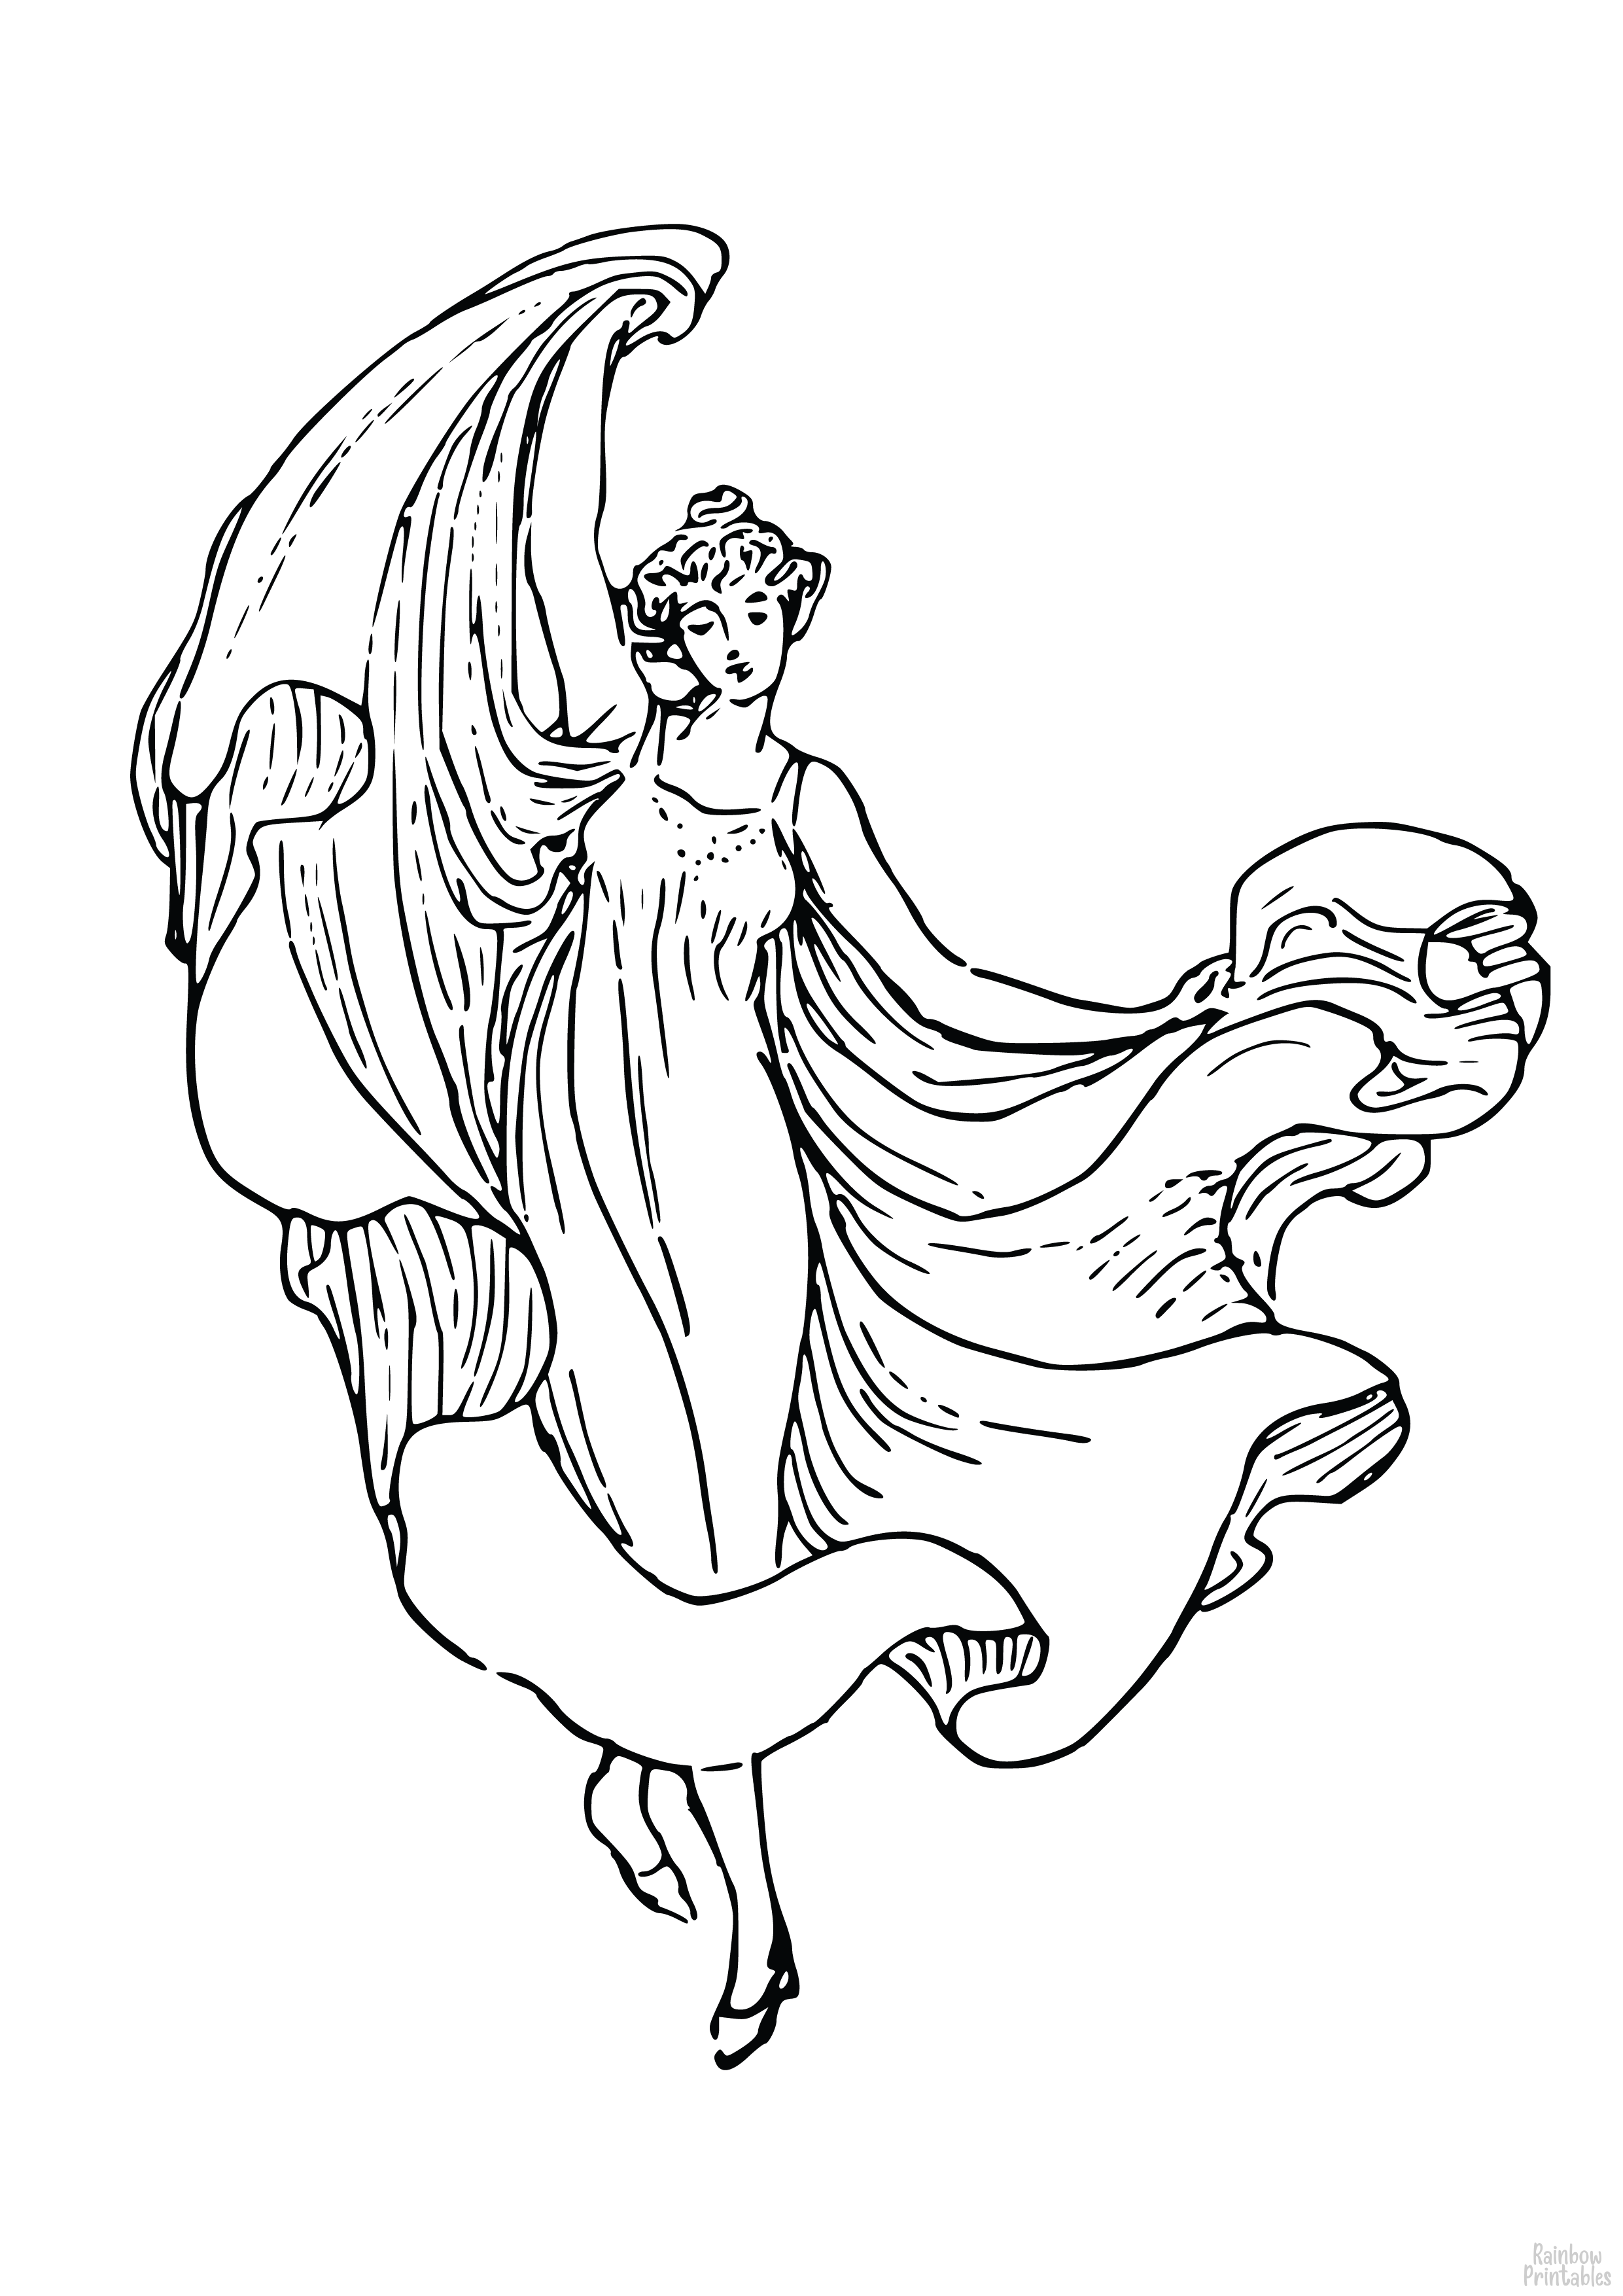 Free Hobbies + Sports Coloring Pages